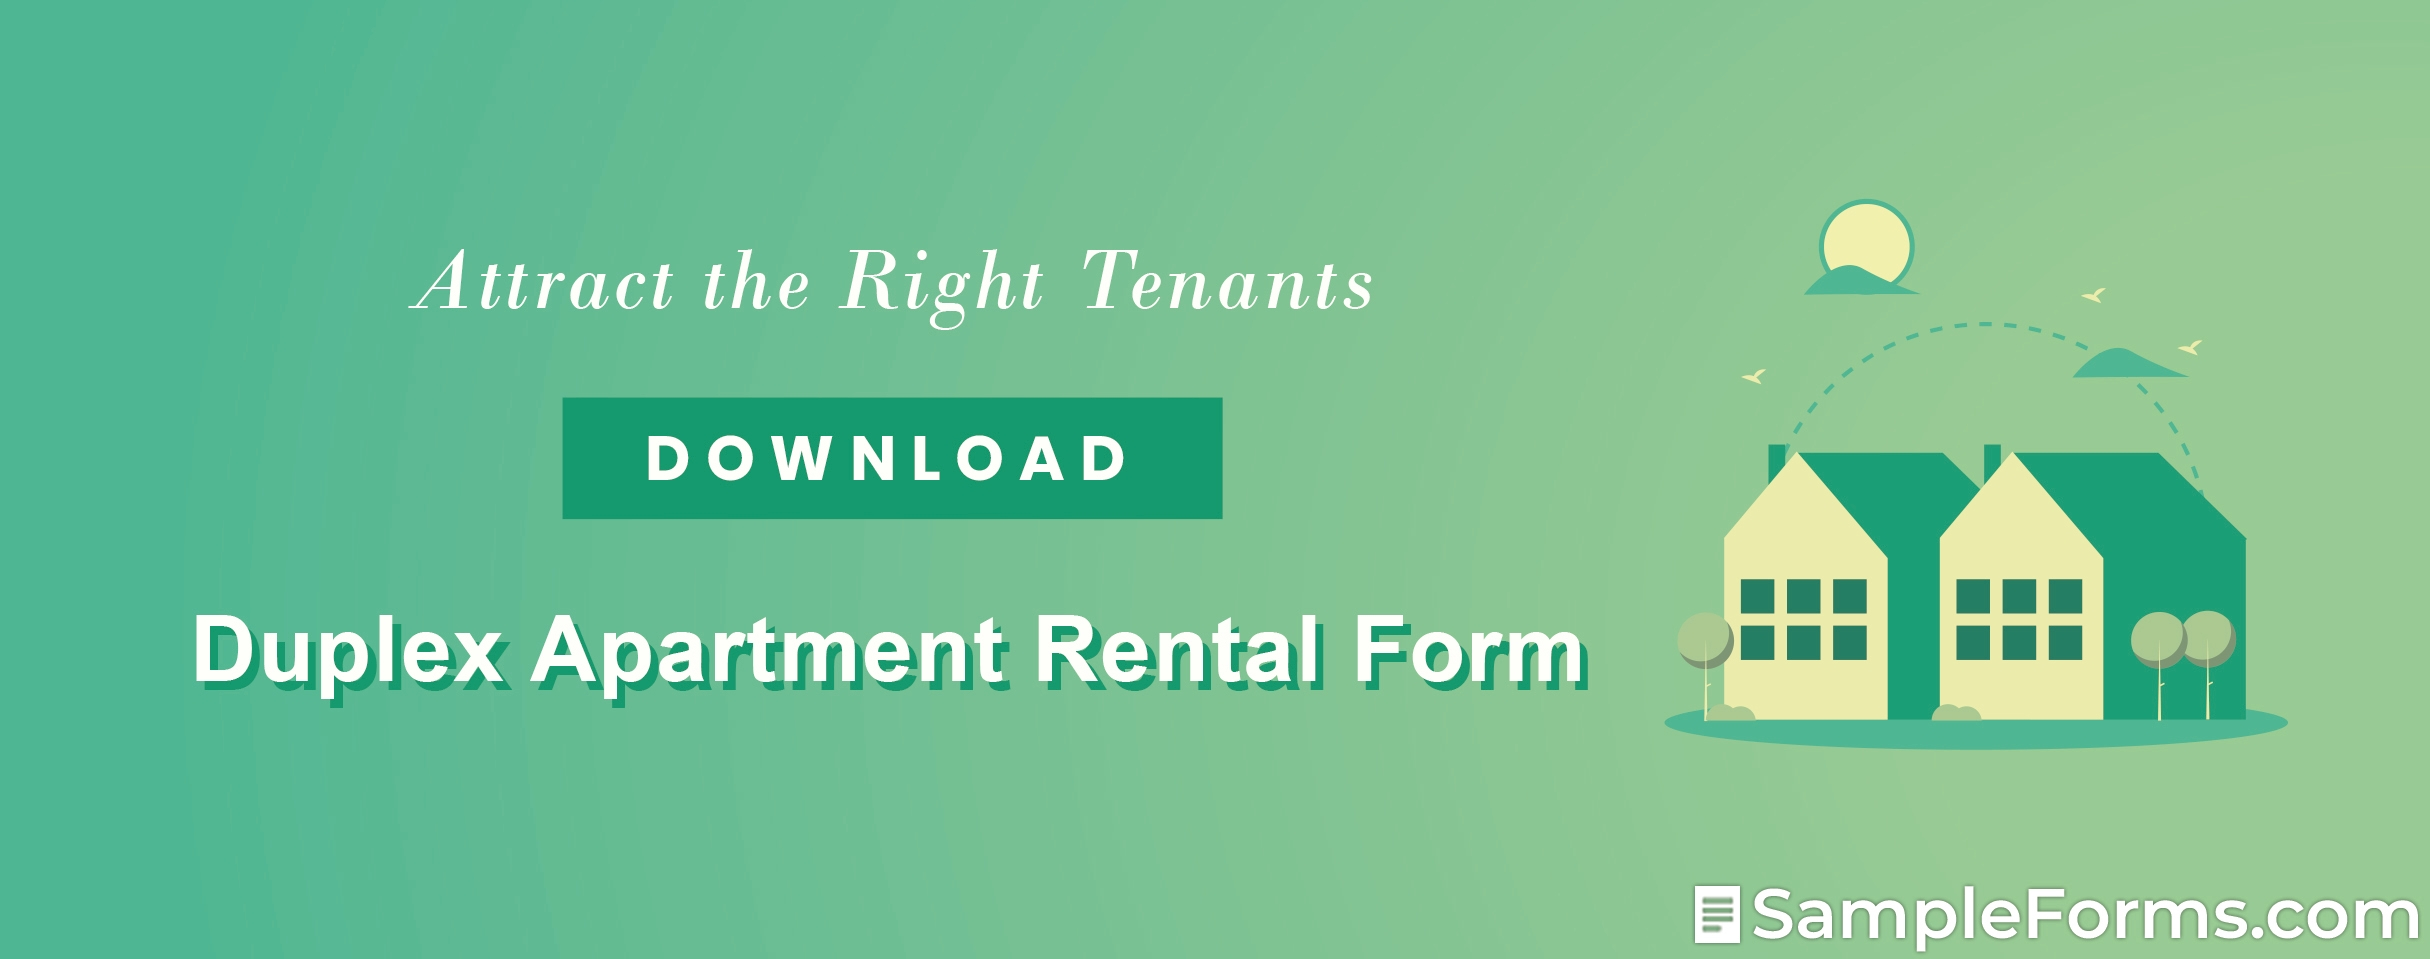 Duplex Apartment Rental Form